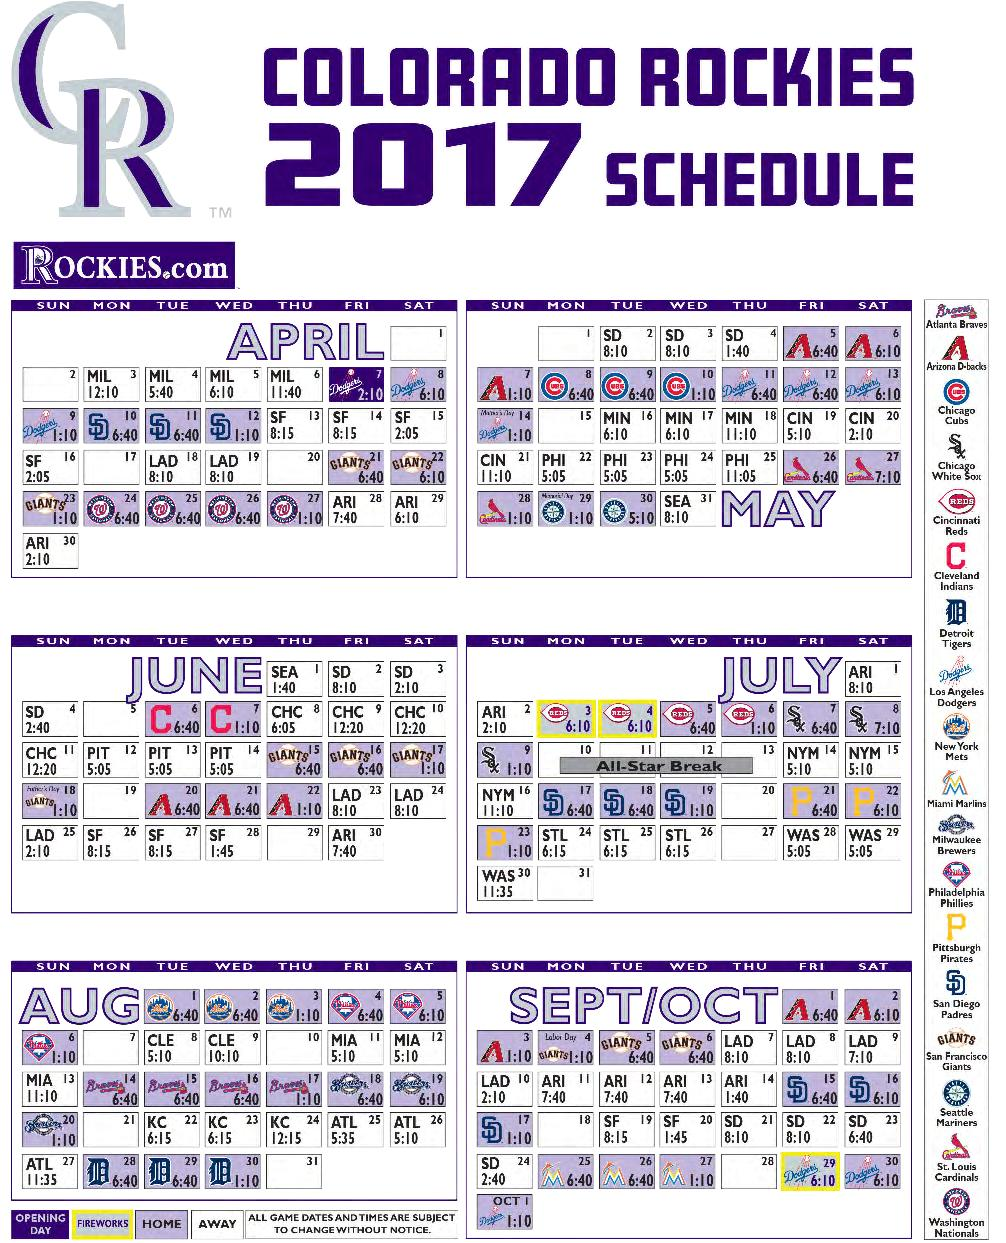 Colorado Rockies 2017 Schedule